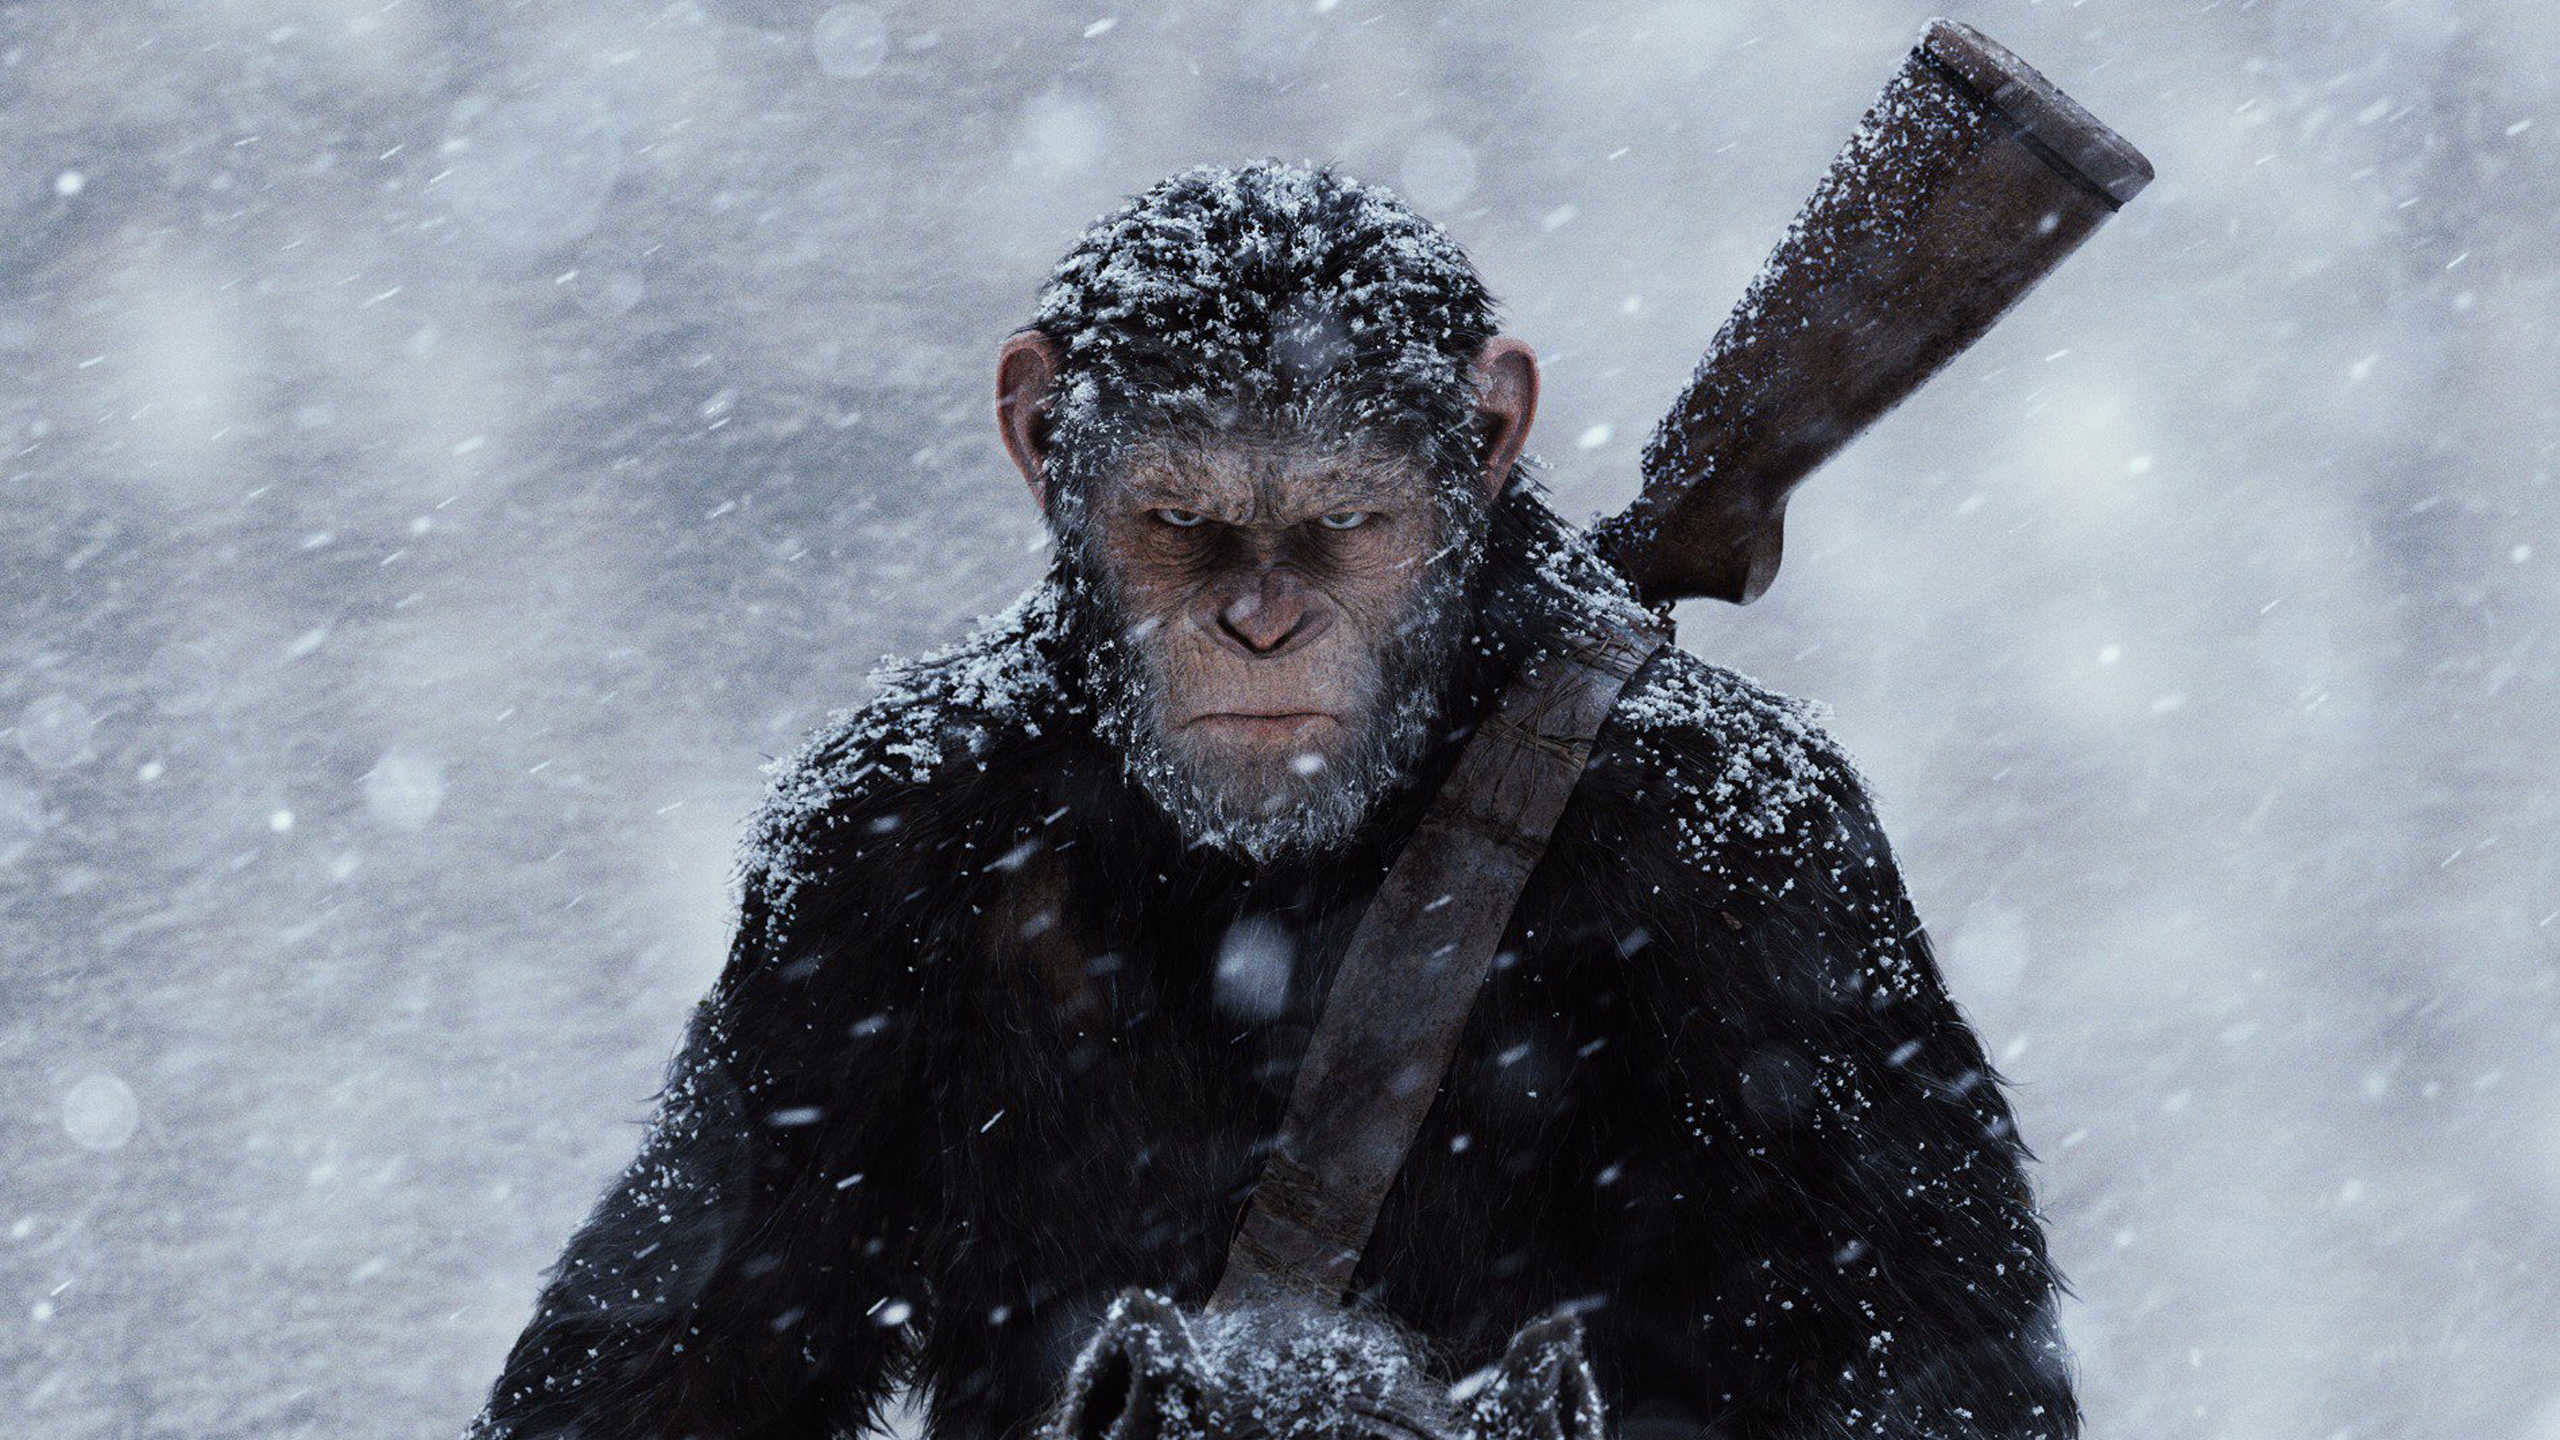 2560x1440 The best wallpapers of 2017 - war for the planet of the apes